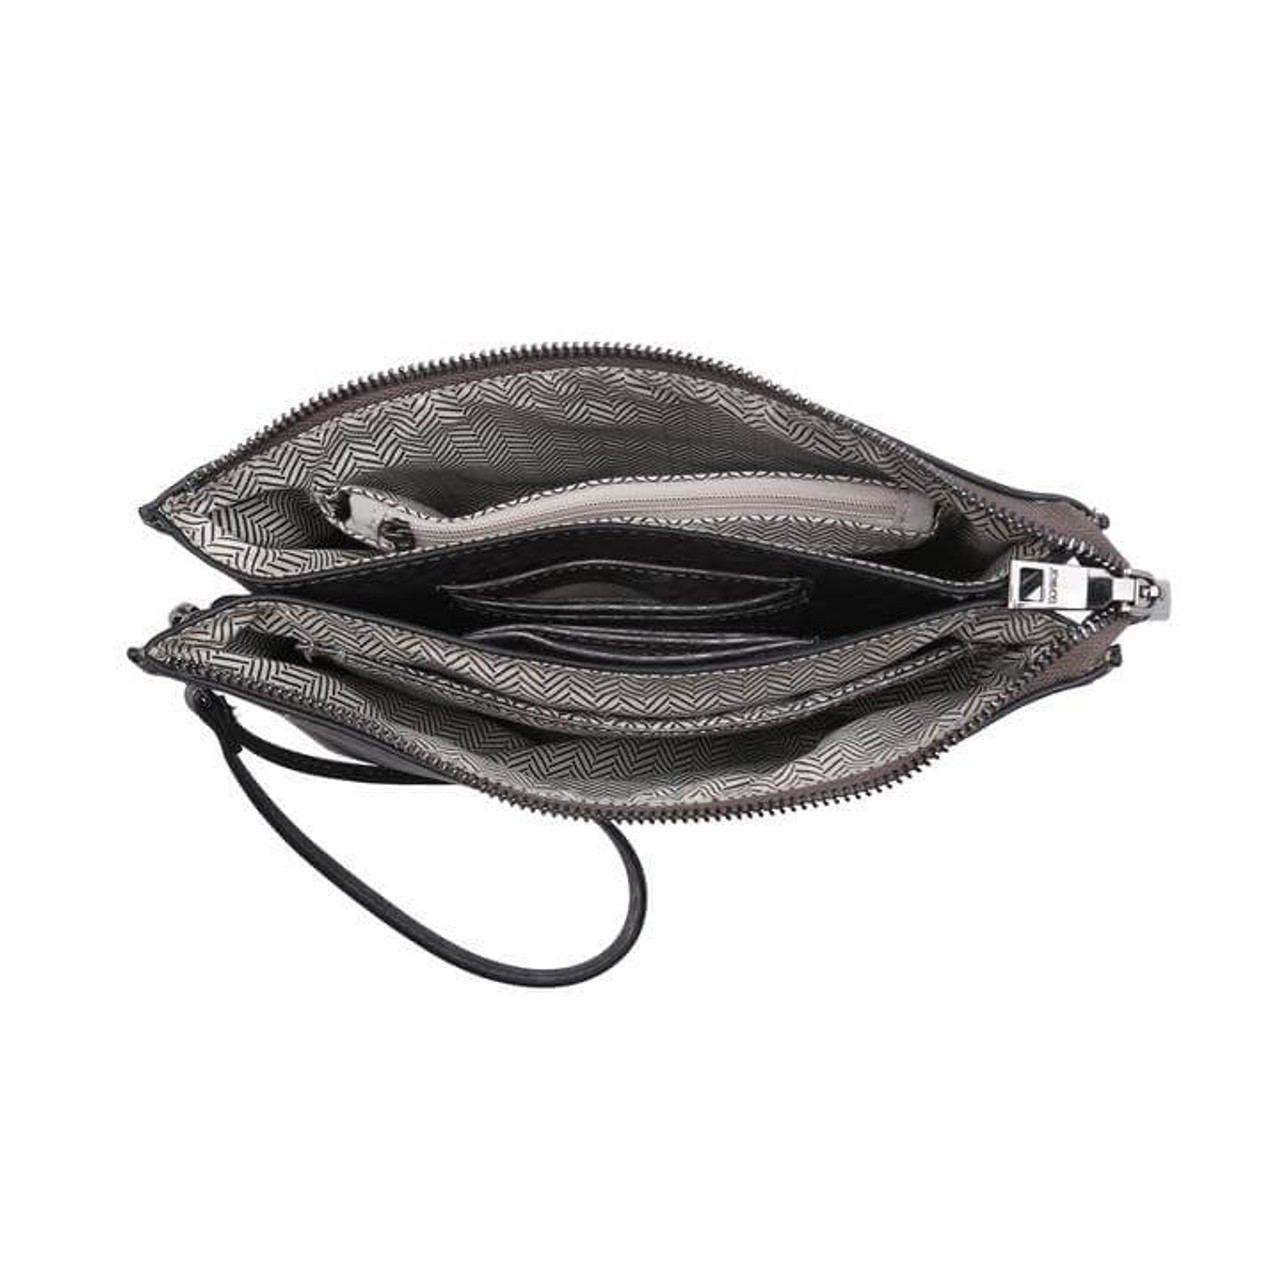 This style features an adjustable/detachable shoulder strap and a wristlet strap so you can wear it as a crossbody or use it as a clutch! Includes two compartments, six card holders, one slip pocket, and one inner zip pocket. Mila zips closed for extra security.